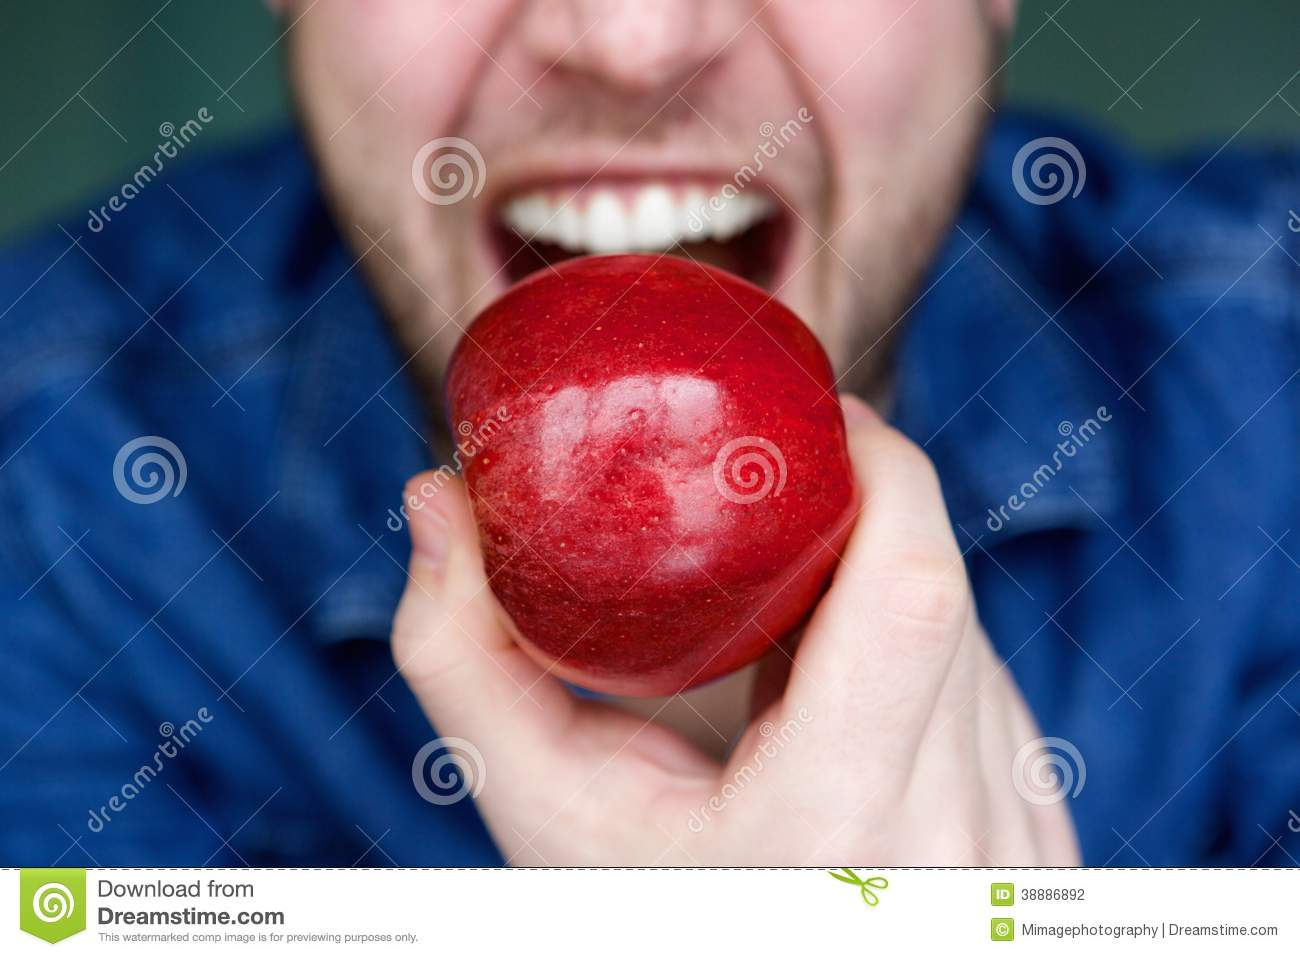 Handsome young man eating red apple